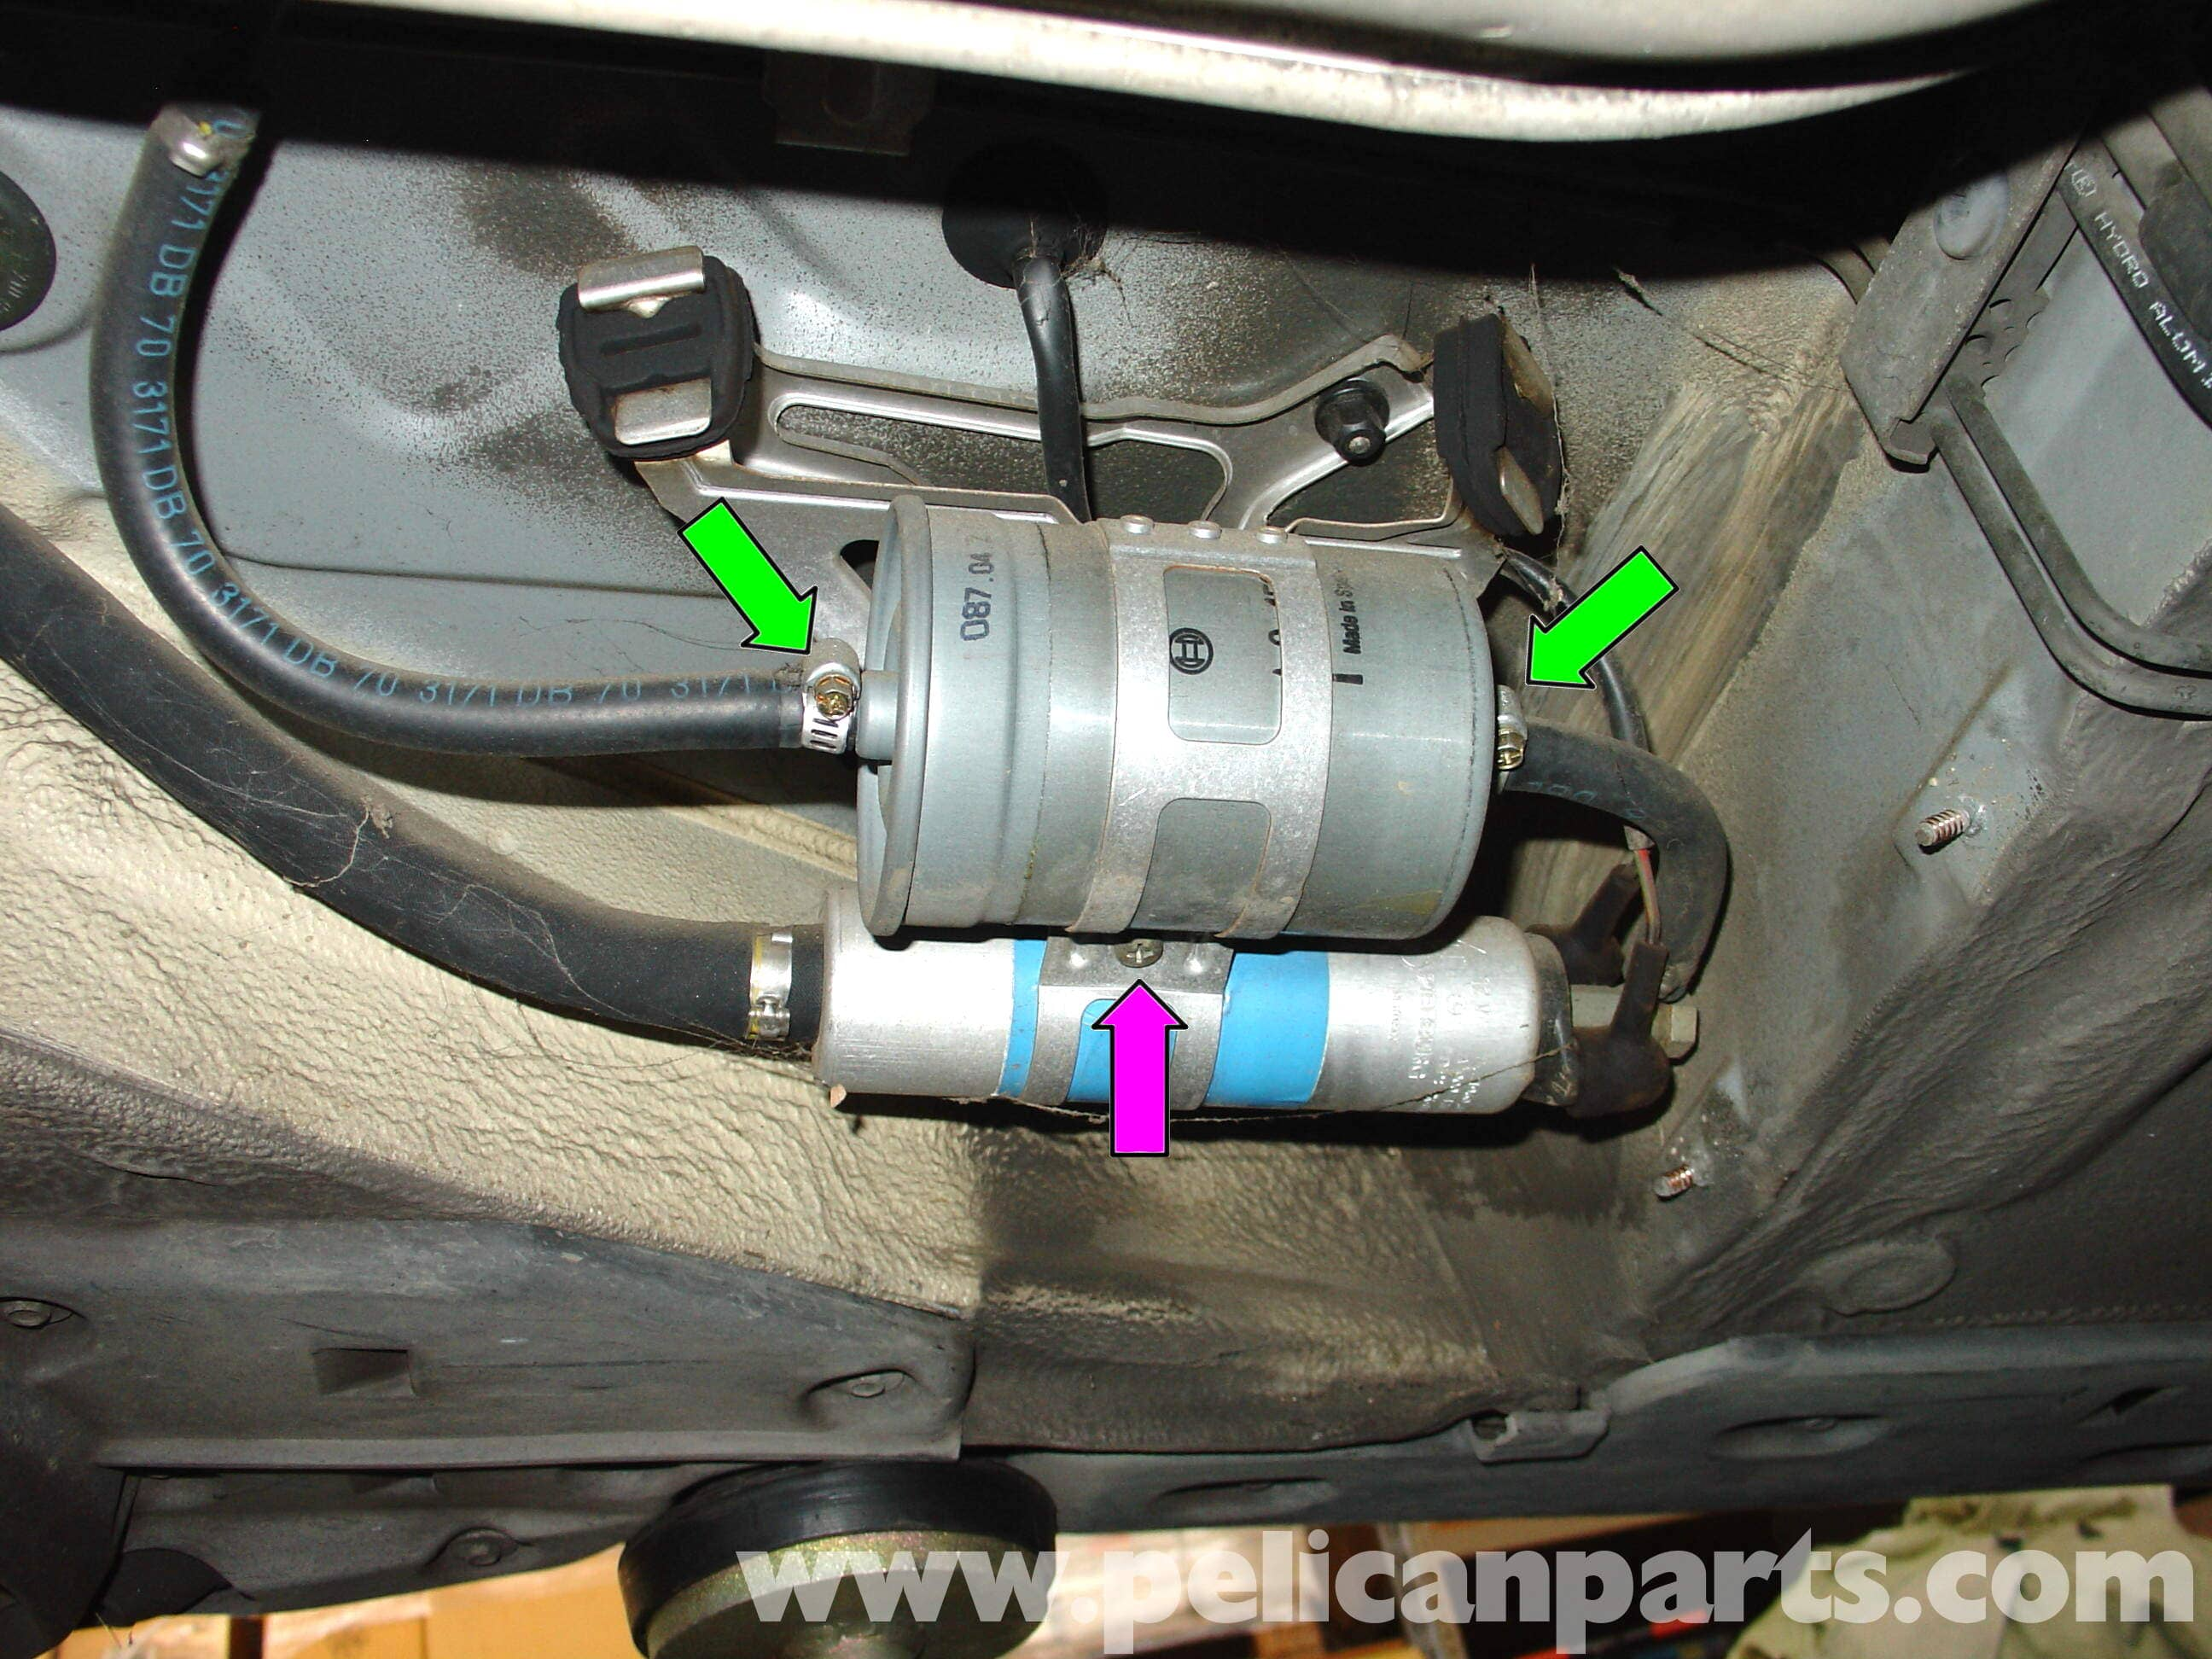 Mercedes Benz W210 Fuel Filter Replacement 1996 03 E320